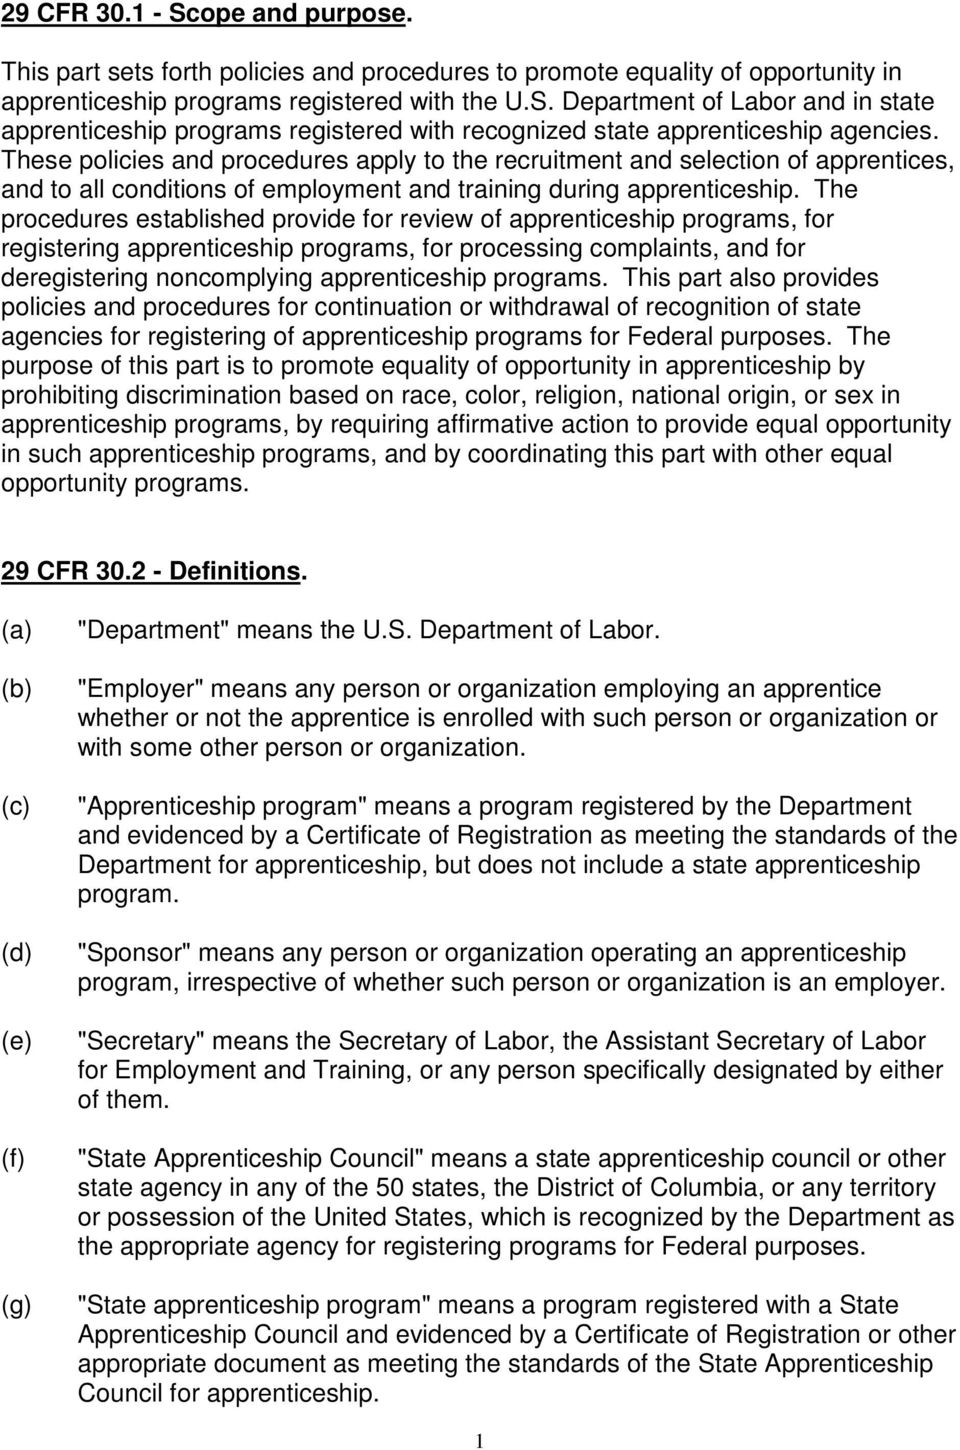 The procedures established provide for review of apprenticeship programs, for registering apprenticeship programs, for processing complaints, and for deregistering noncomplying apprenticeship